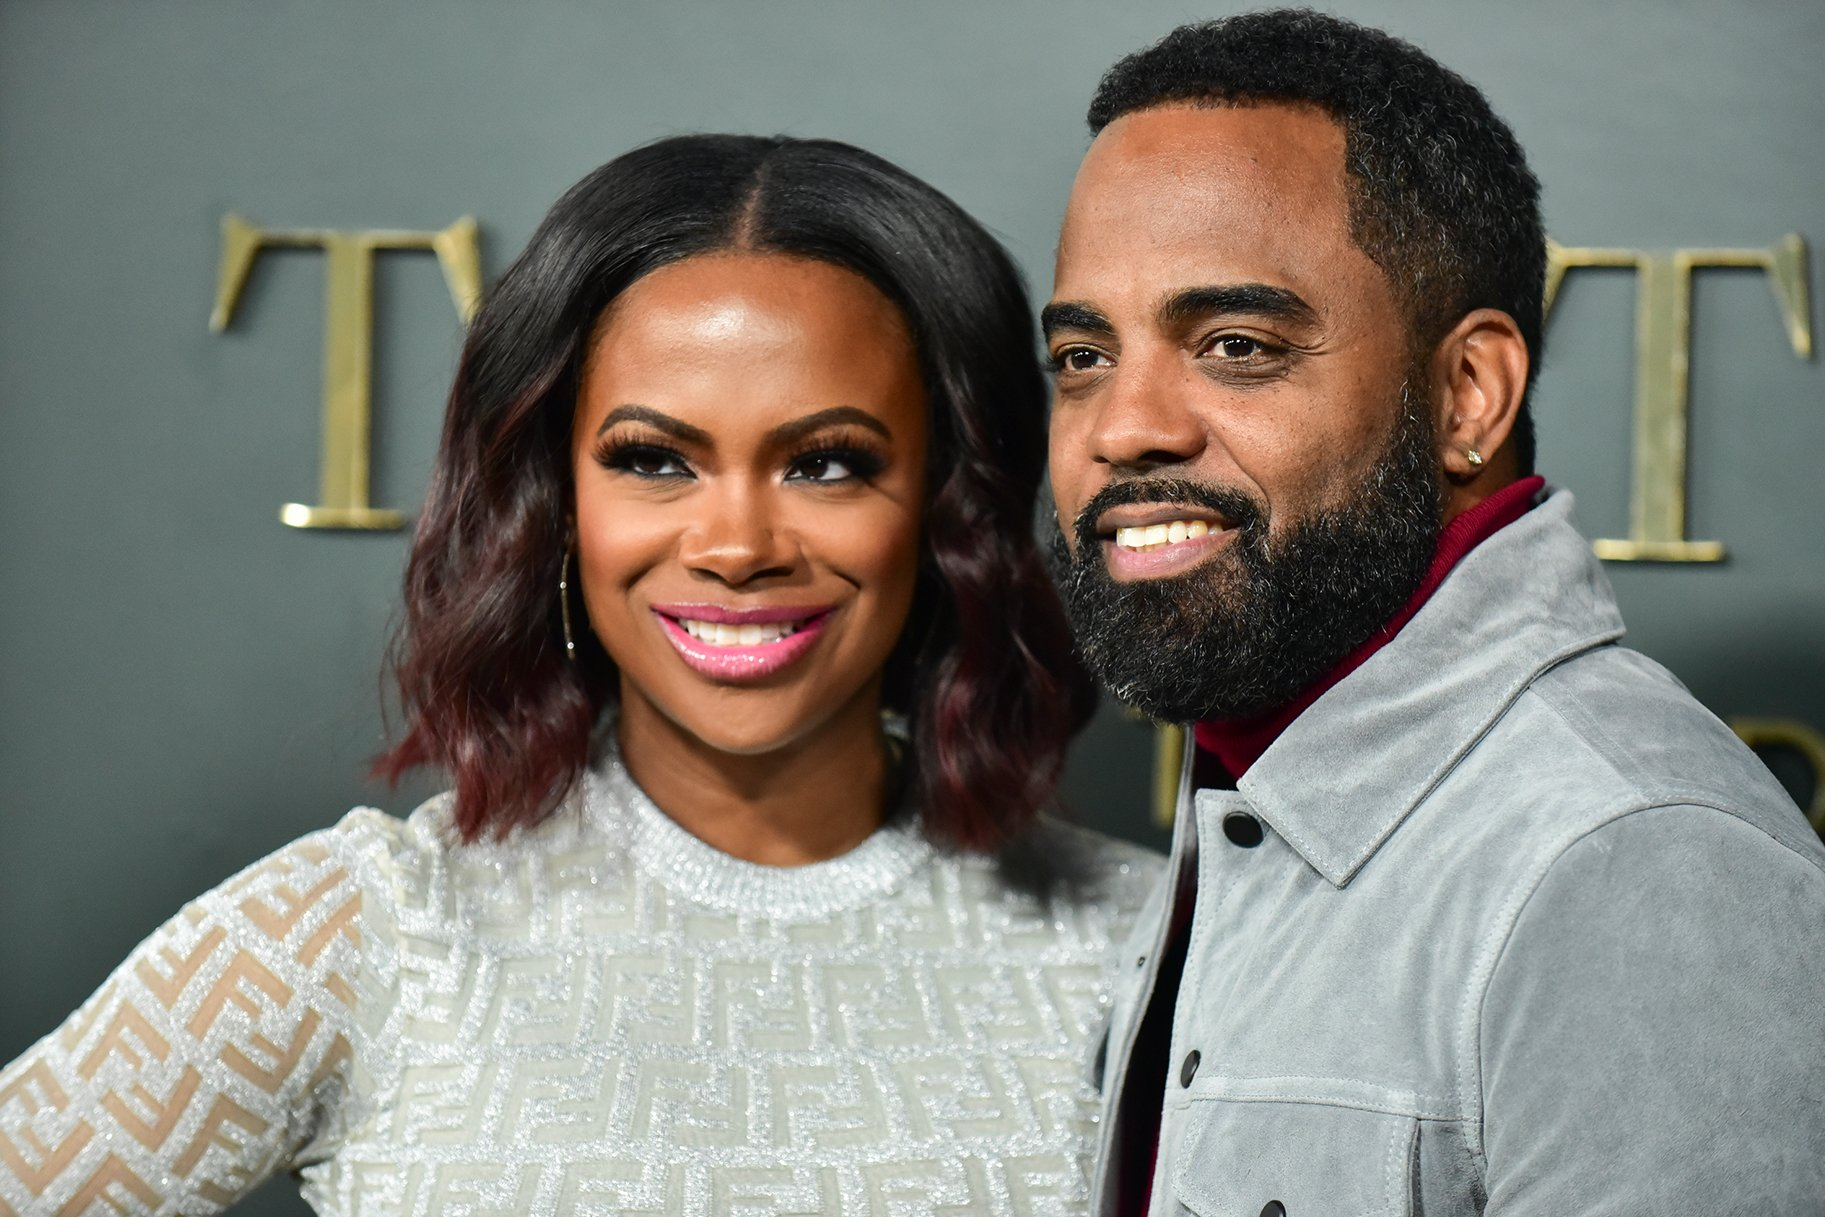 Kandi Burruss Shares A Racy Video Ahead Of Valentines Day – Check Her Out Dropping Her Clothes